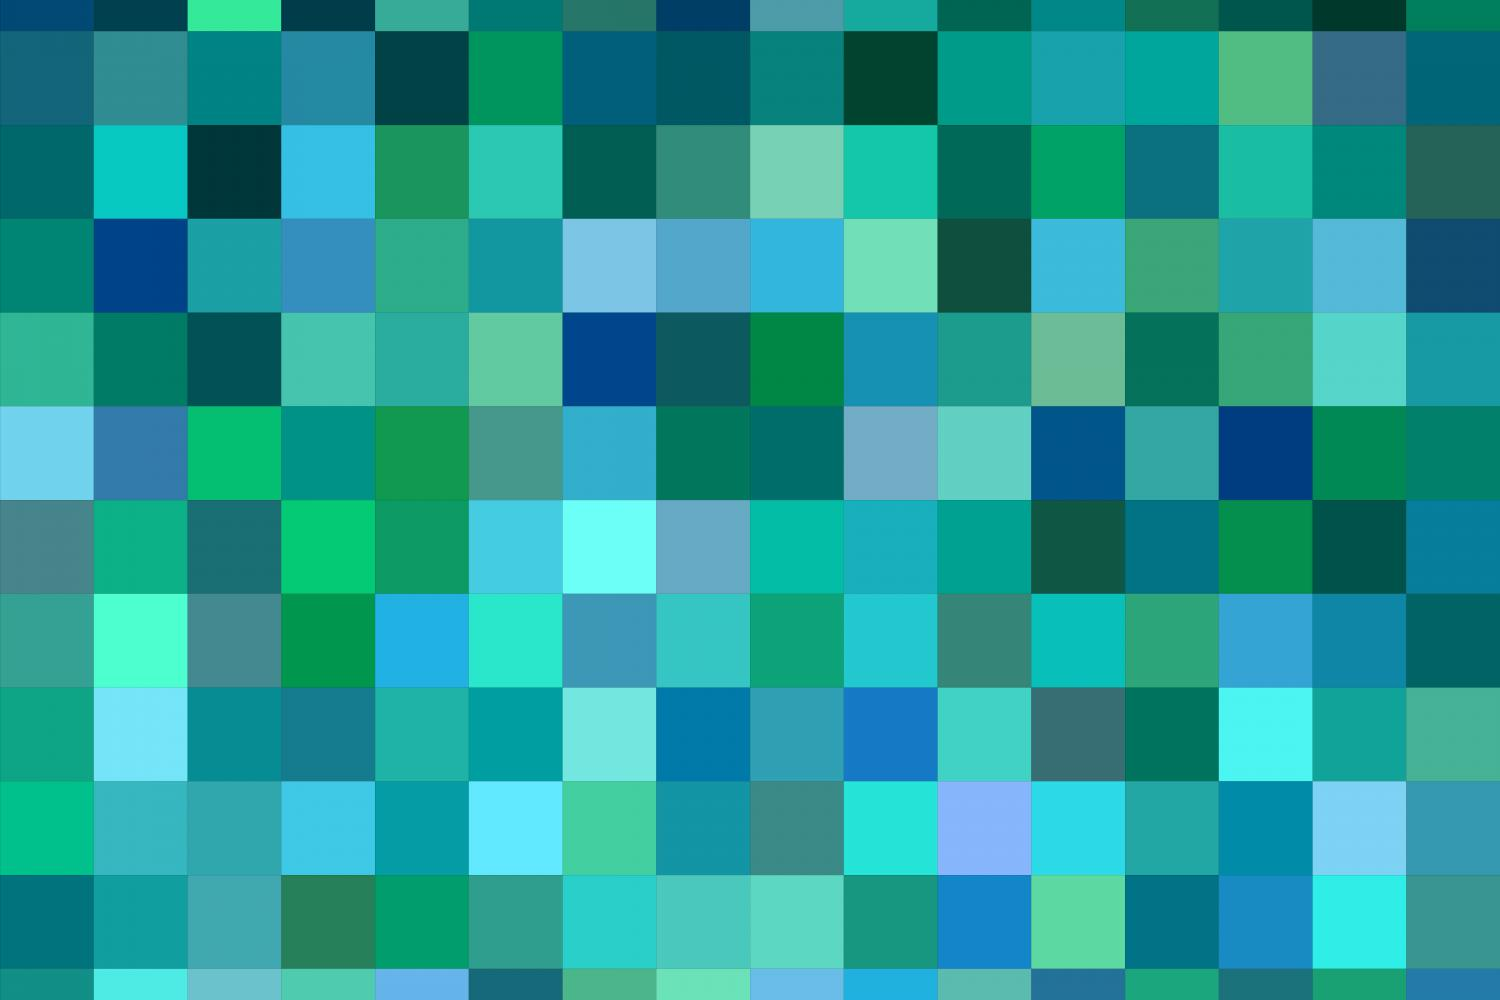 Download Free Teal Abstract Square Background Graphic By Davidzydd Creative for Cricut Explore, Silhouette and other cutting machines.